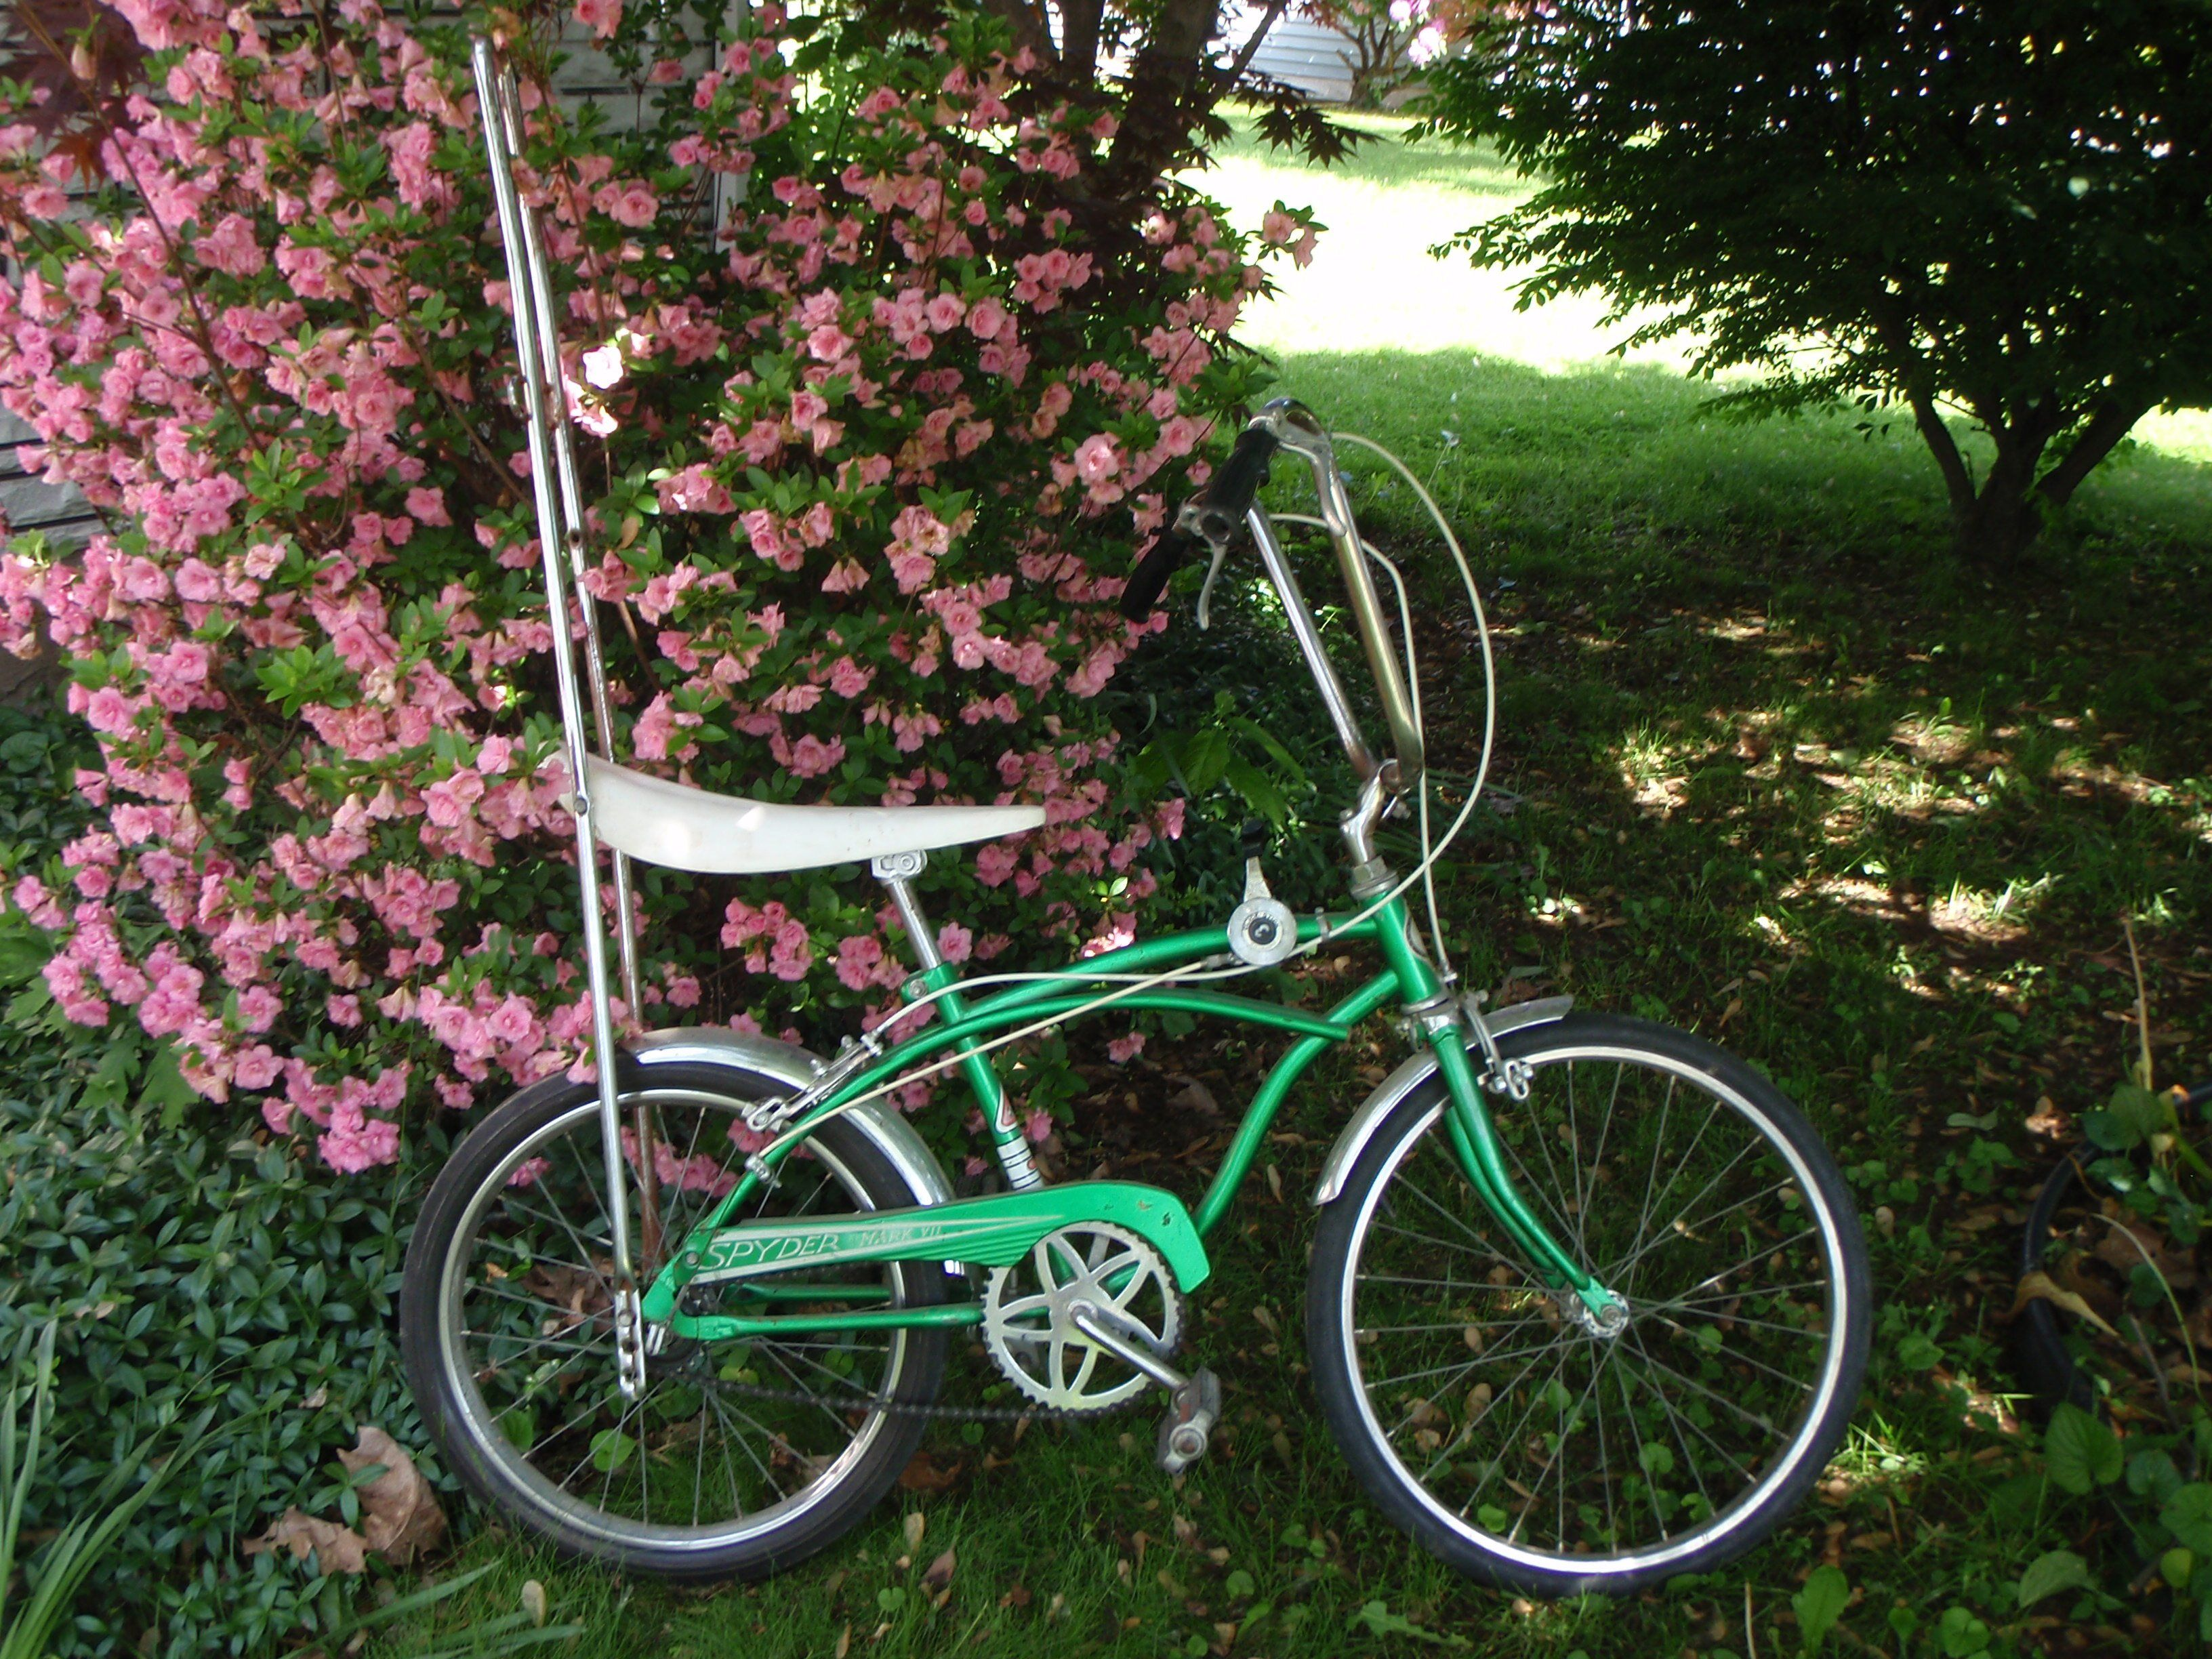 1960 sears bicycle - Boys Sears Spyder Bike With Sissy Bar And Three Speed Shifter